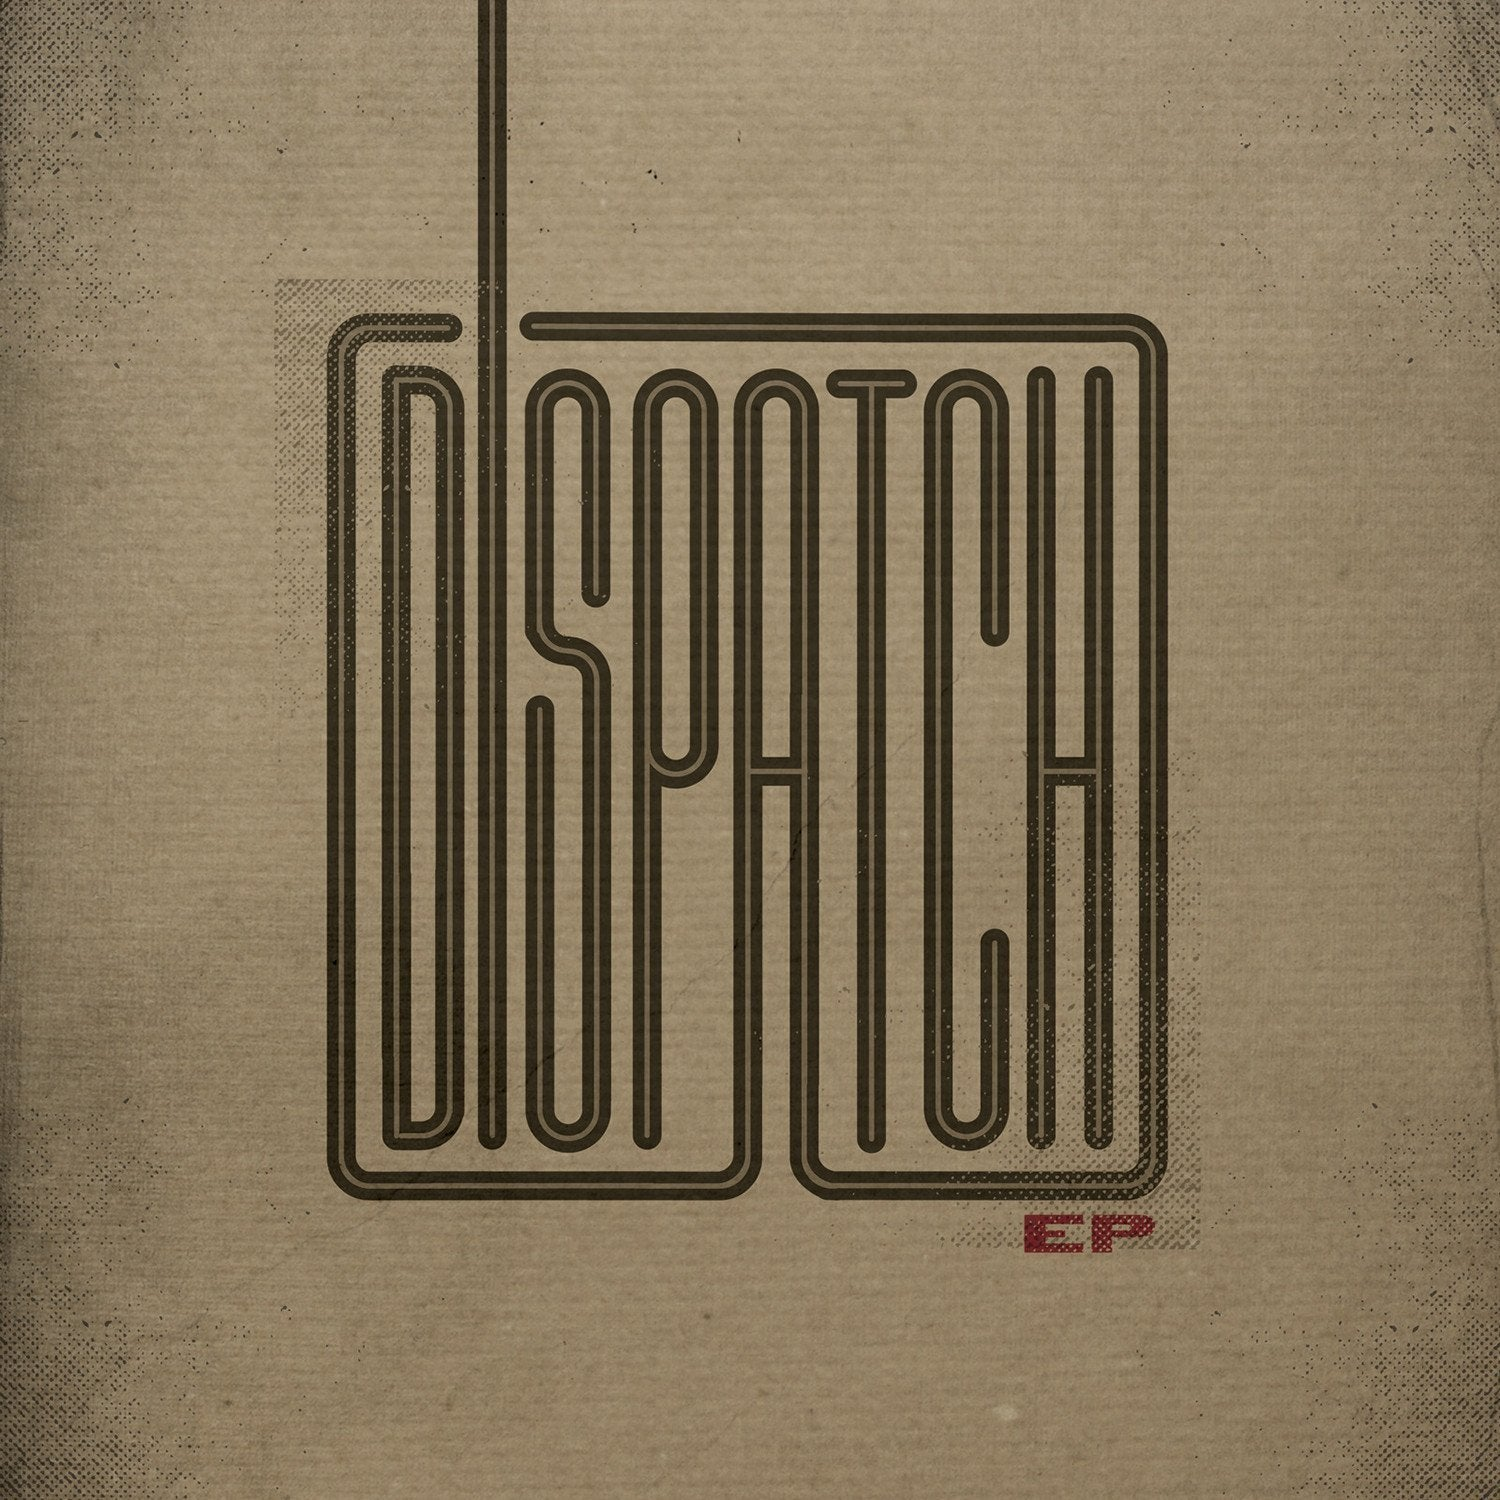 'Dispatch' EP